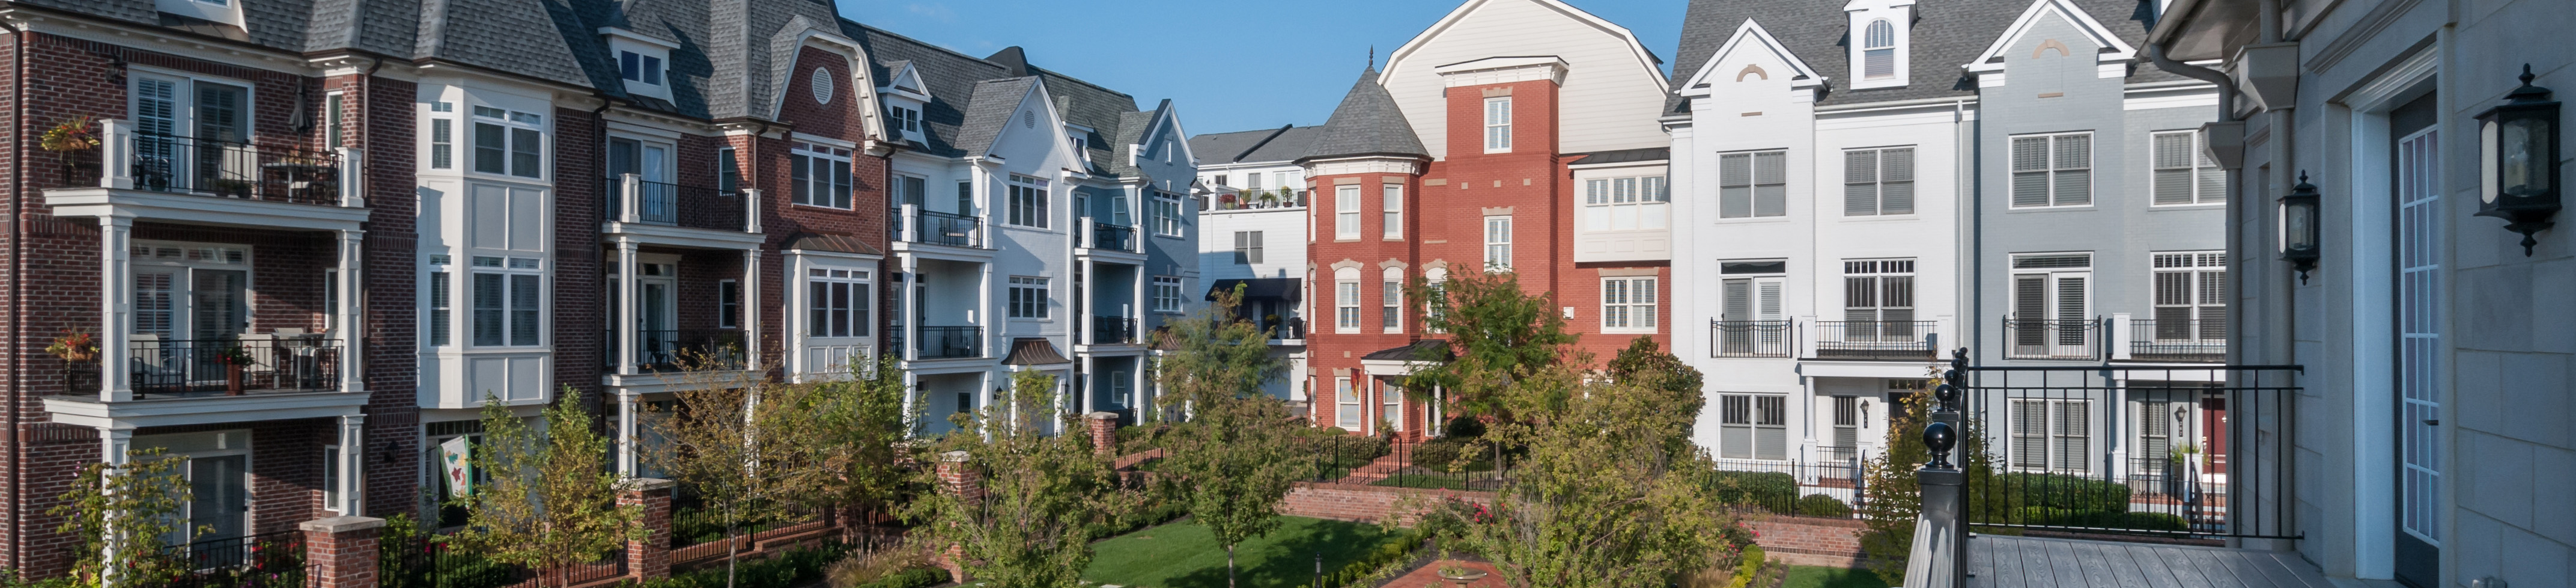 Townhome Style Monument Square Model Luxury Homes